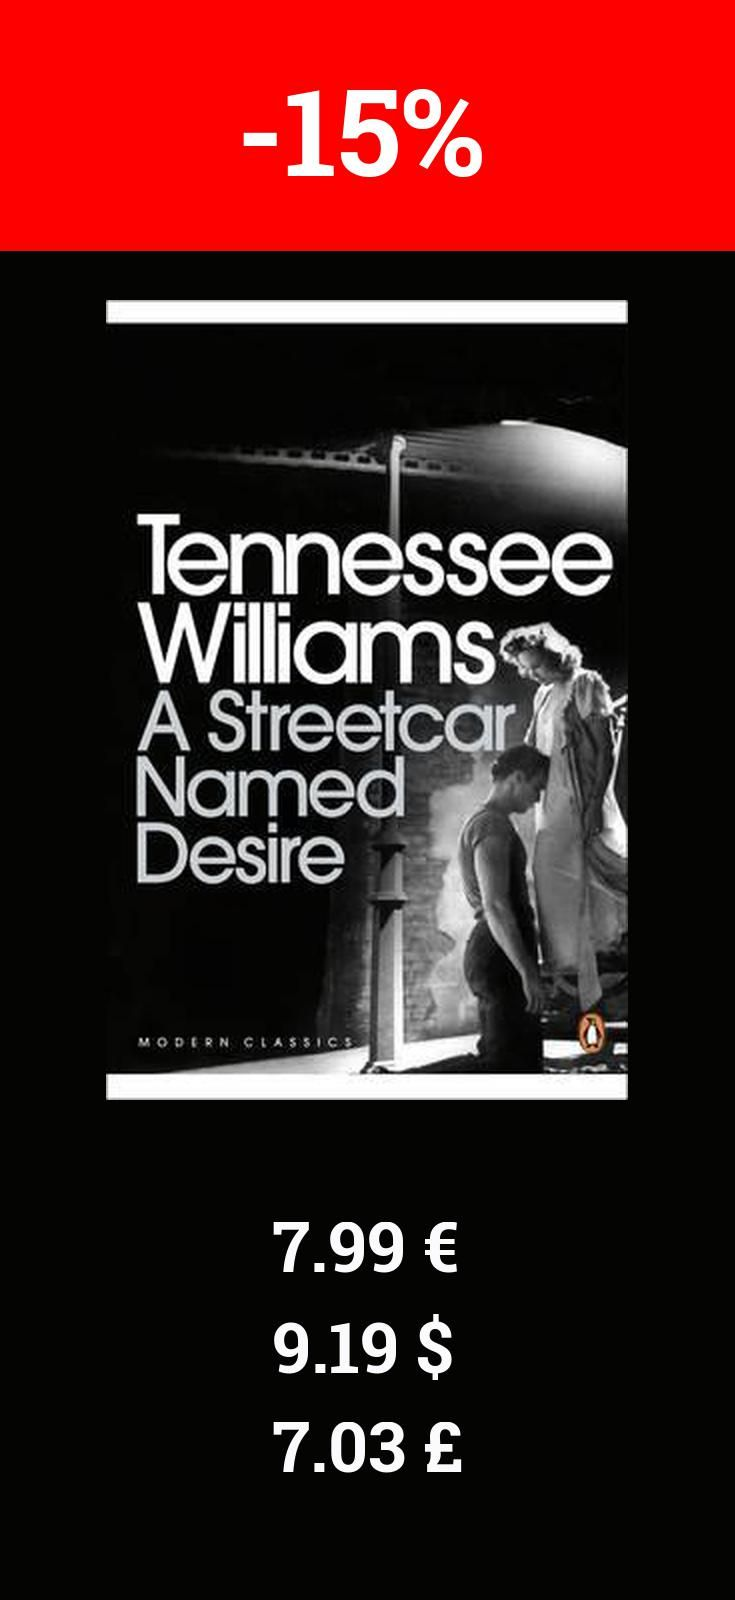 Checkout A Streetcar Named Desire. Book is currently 15% off on bookdepository.  Winner of the Pulitzer Prize, Tennessee Williams s A Streetcar Named Desire is the tale of a catastrophic confrontation between fantasy and reality, embodied in the characters of Blanche DuBois and Stanley Kowalski. This Penguin Modern Classics edition includes an introduction by Arthur Miller.  I have always depended on the kindness of strangers  Fading southern belle Blanche DuBois is adrift in the modern…